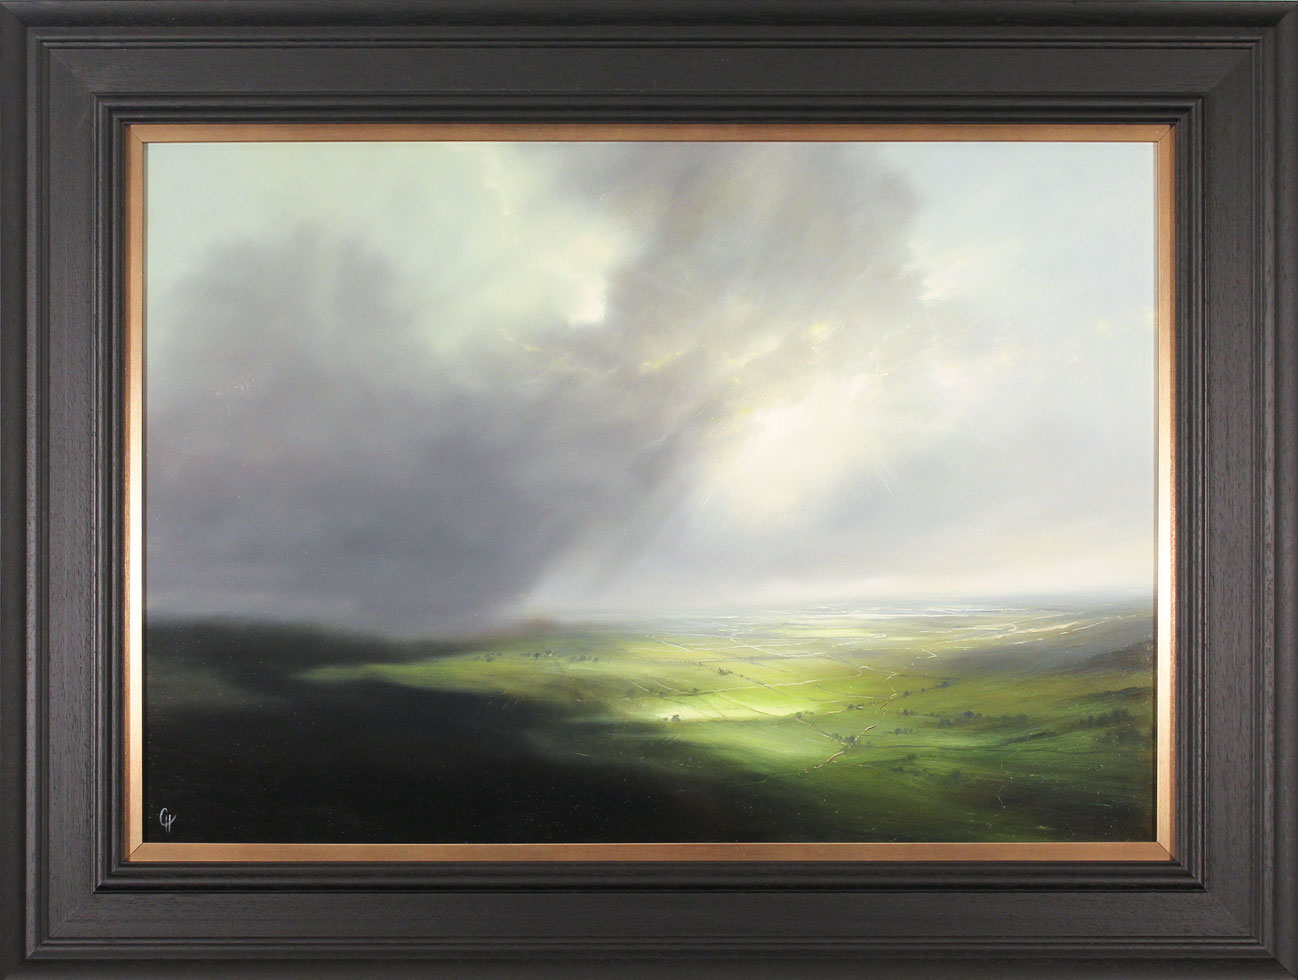 Clare Haley, Original oil painting on panel, Yorkshire, Lost in Shadow, click to enlarge